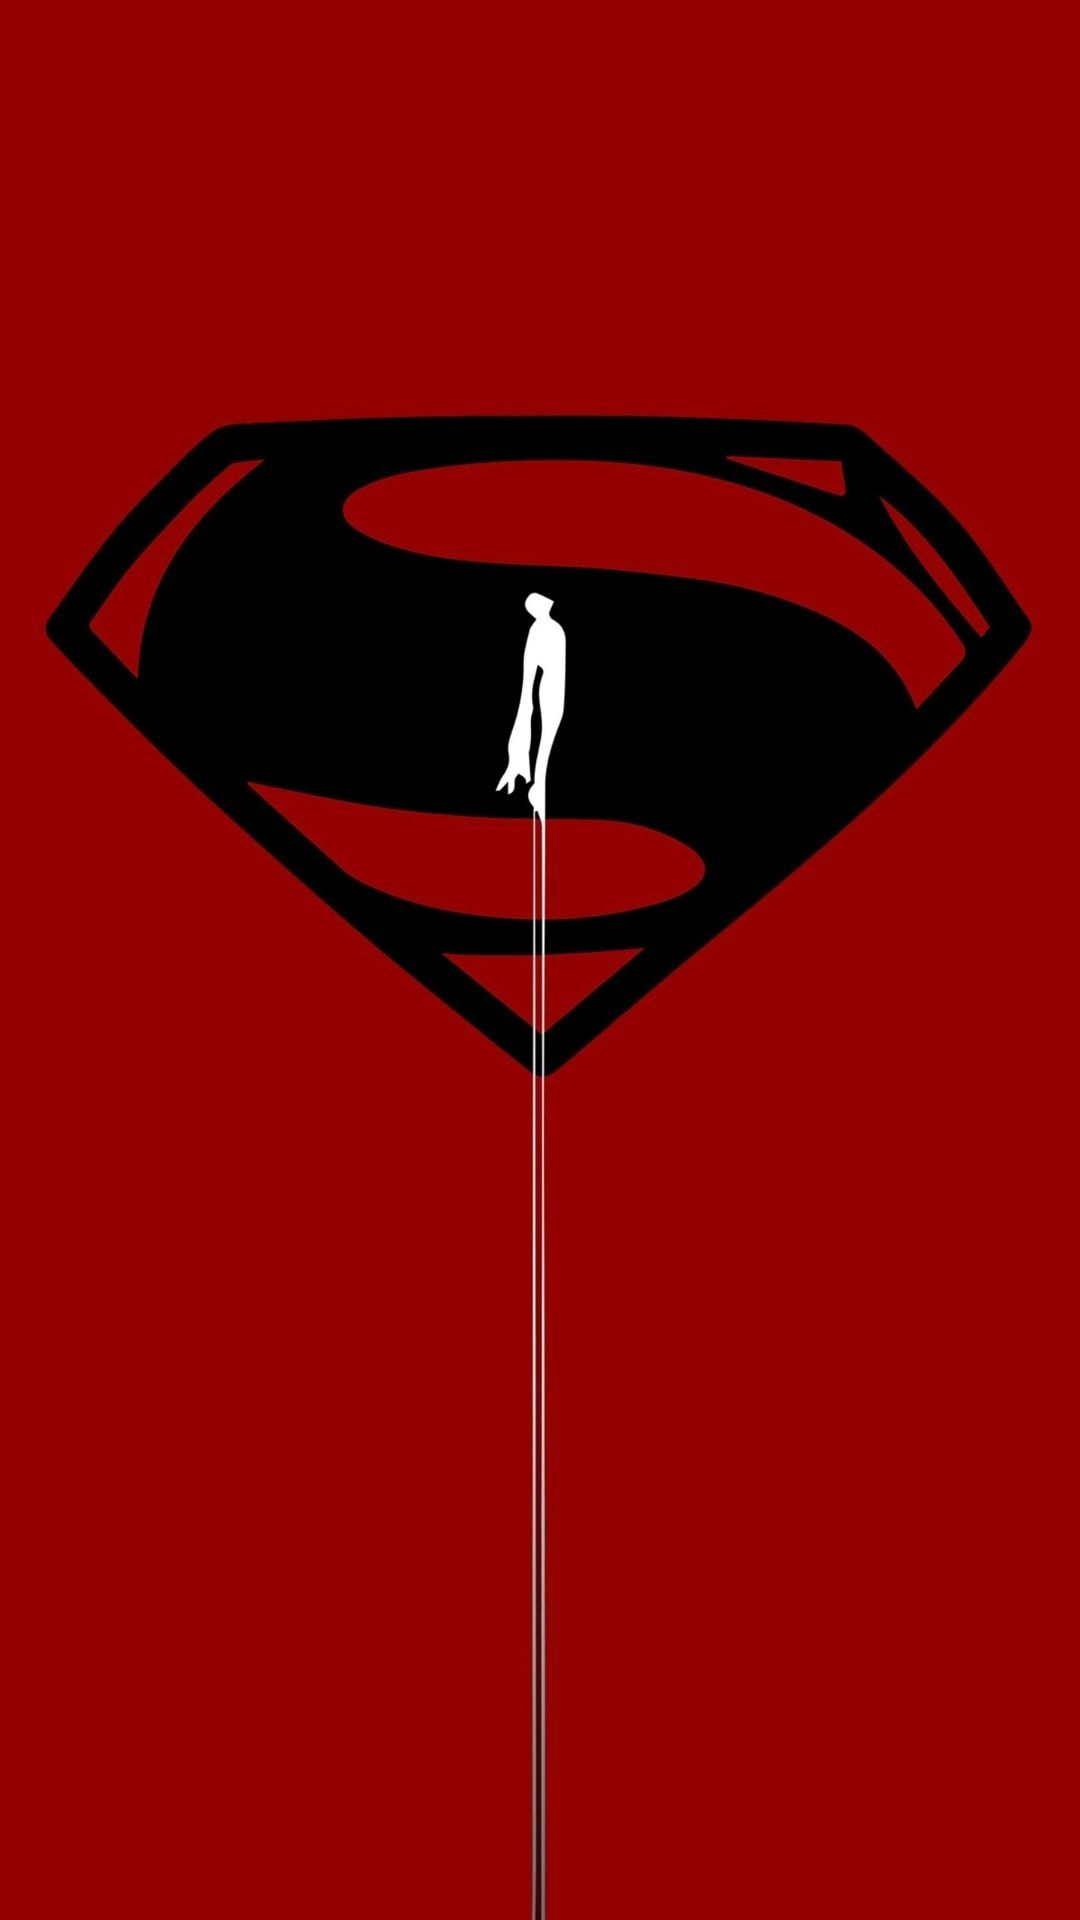 Superman Red Iphone Wallpaper Superman Wallpaper Superman Art